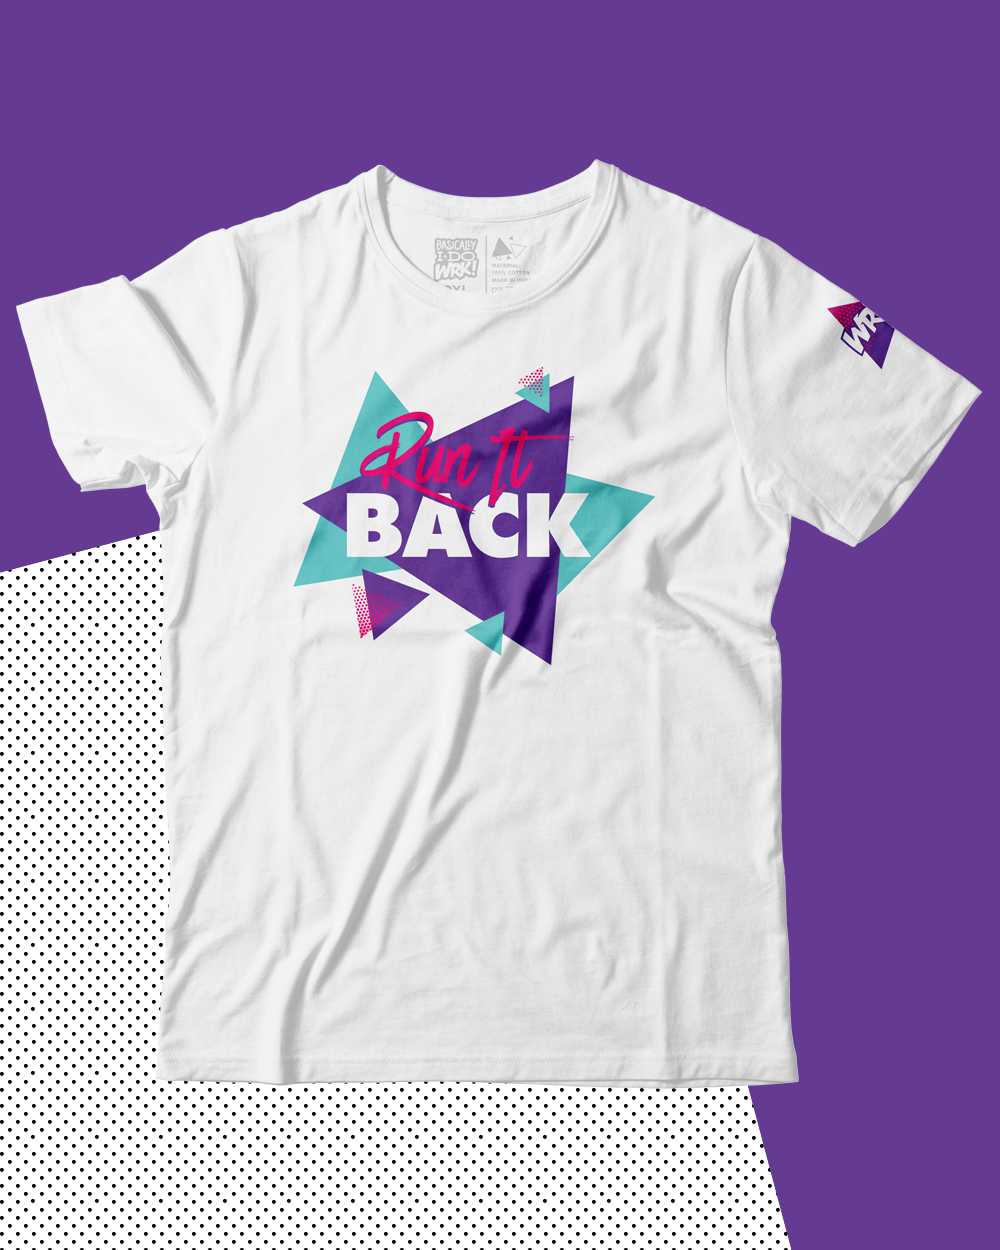 Run It Back Tee (White)